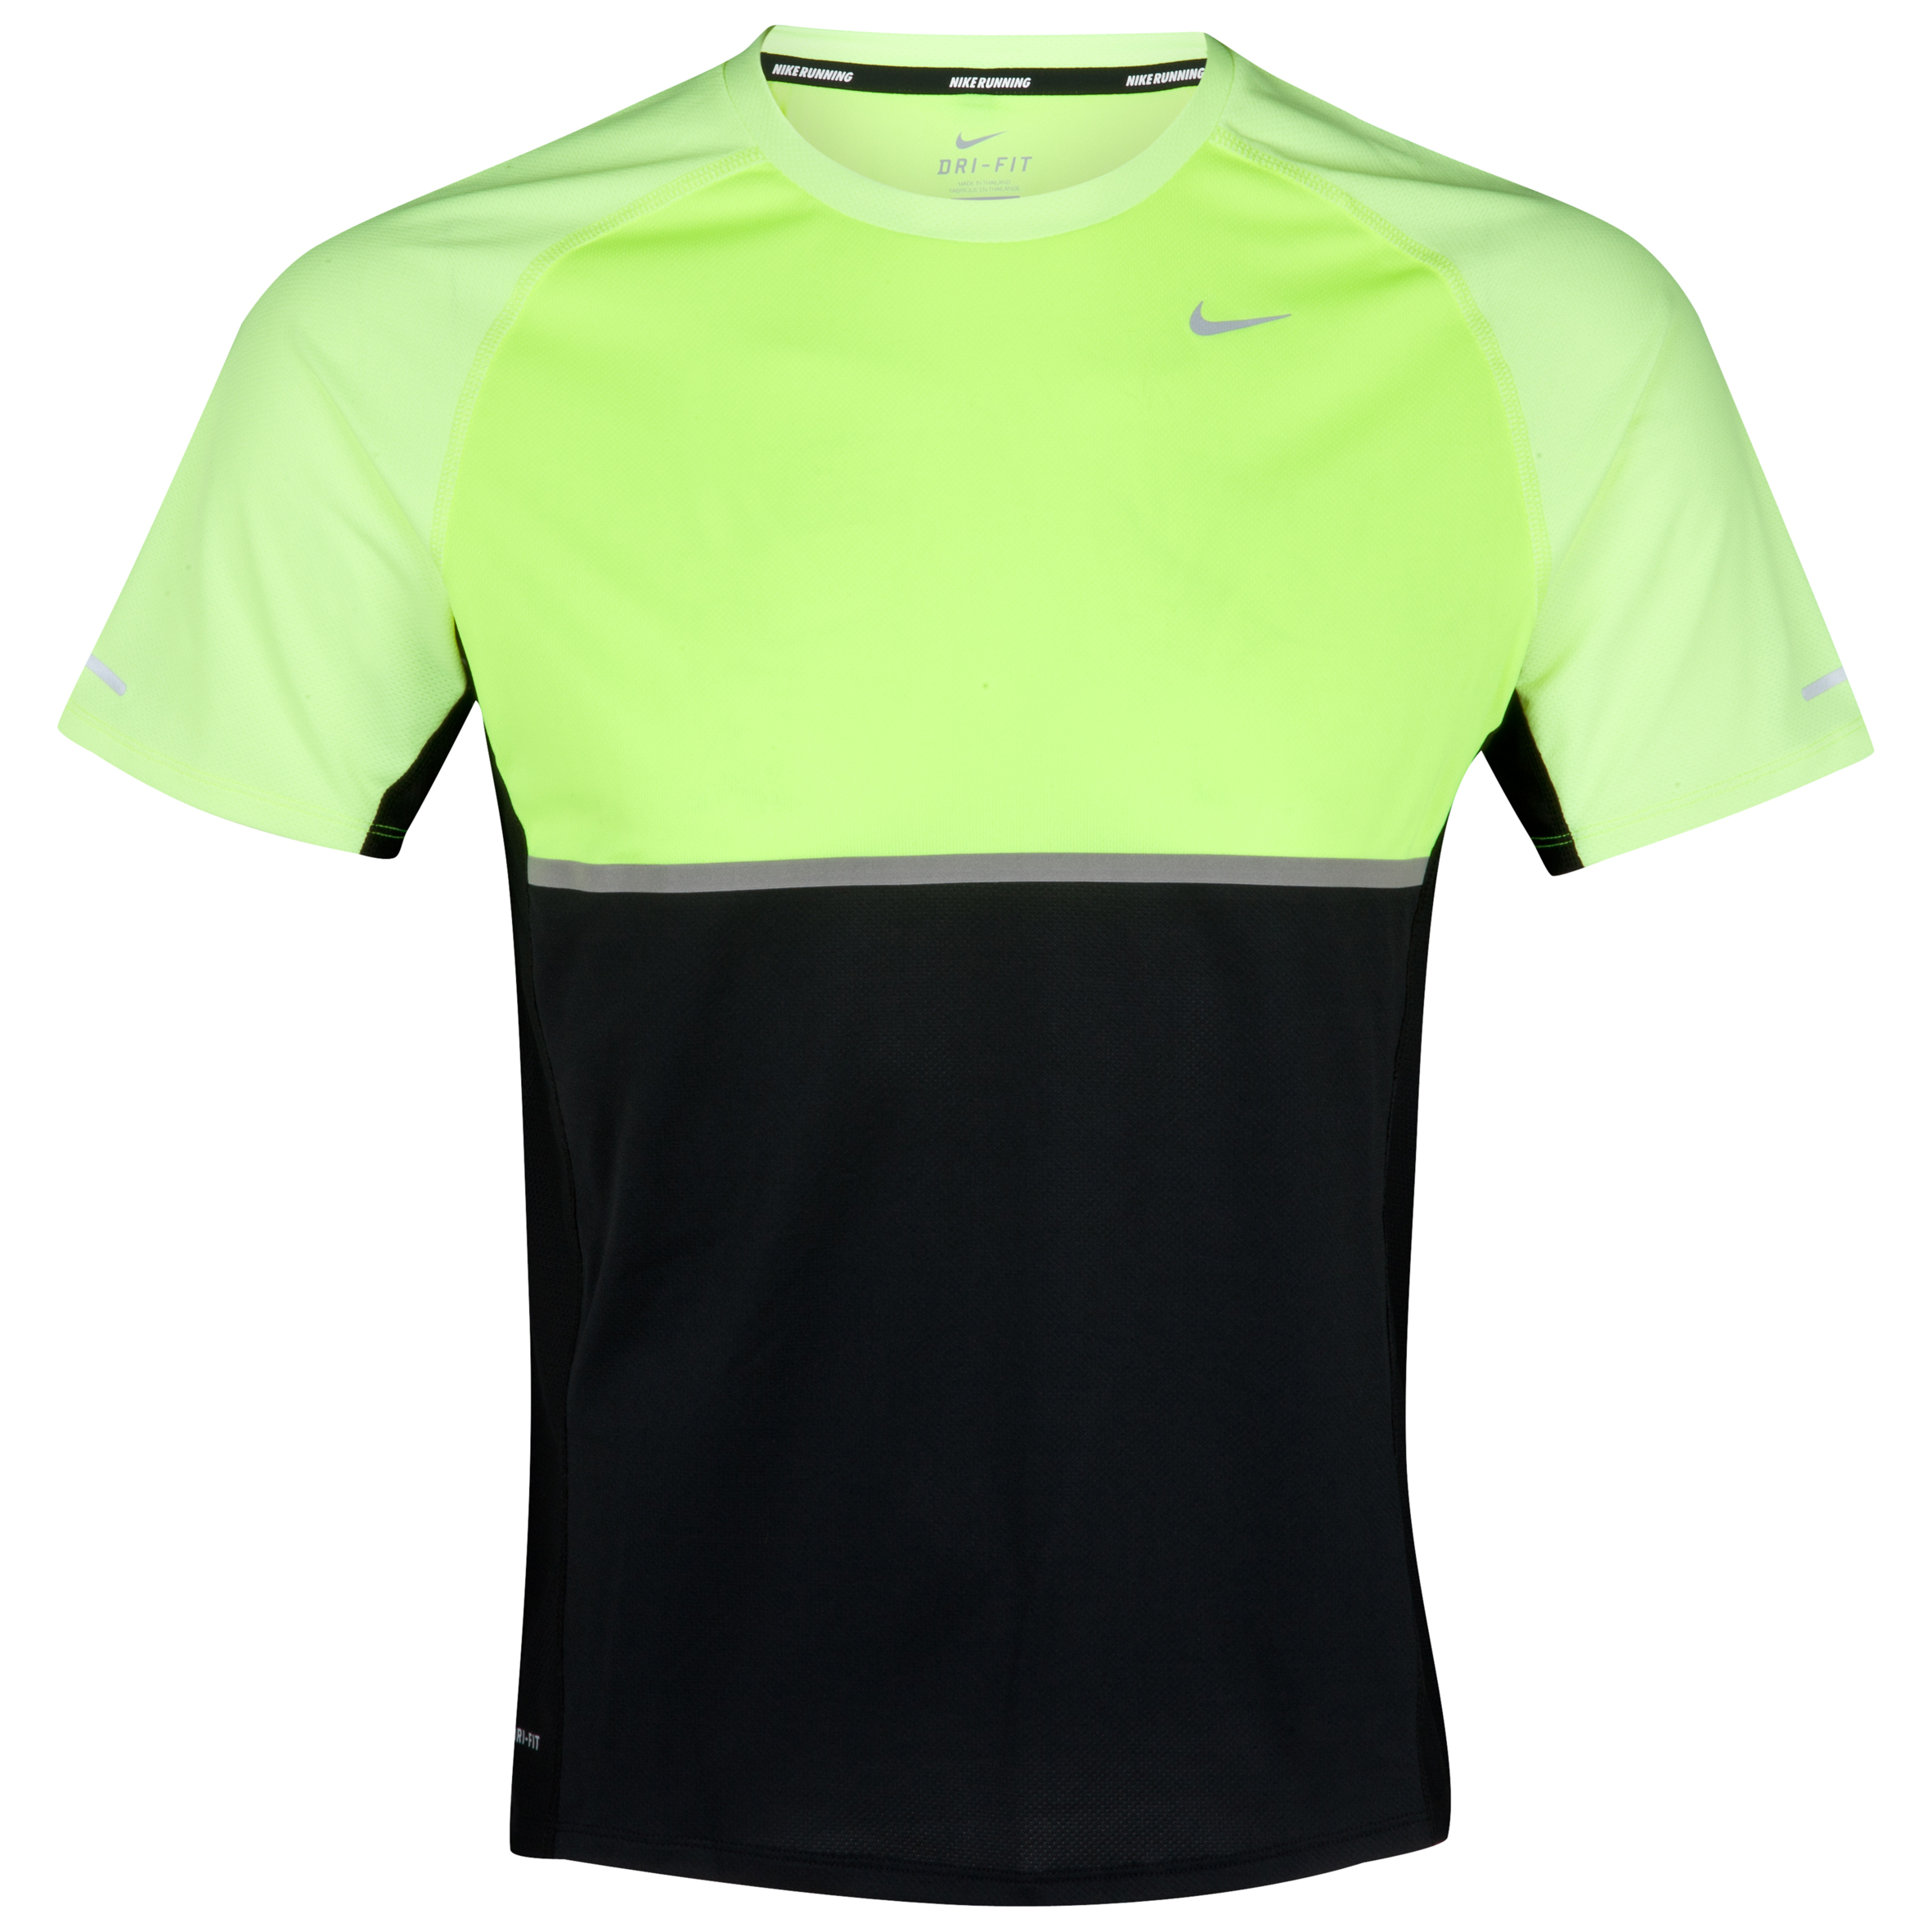 Nike Sphere T-Shirt - Black/Volt/Light Charcoal/Reflective Silver